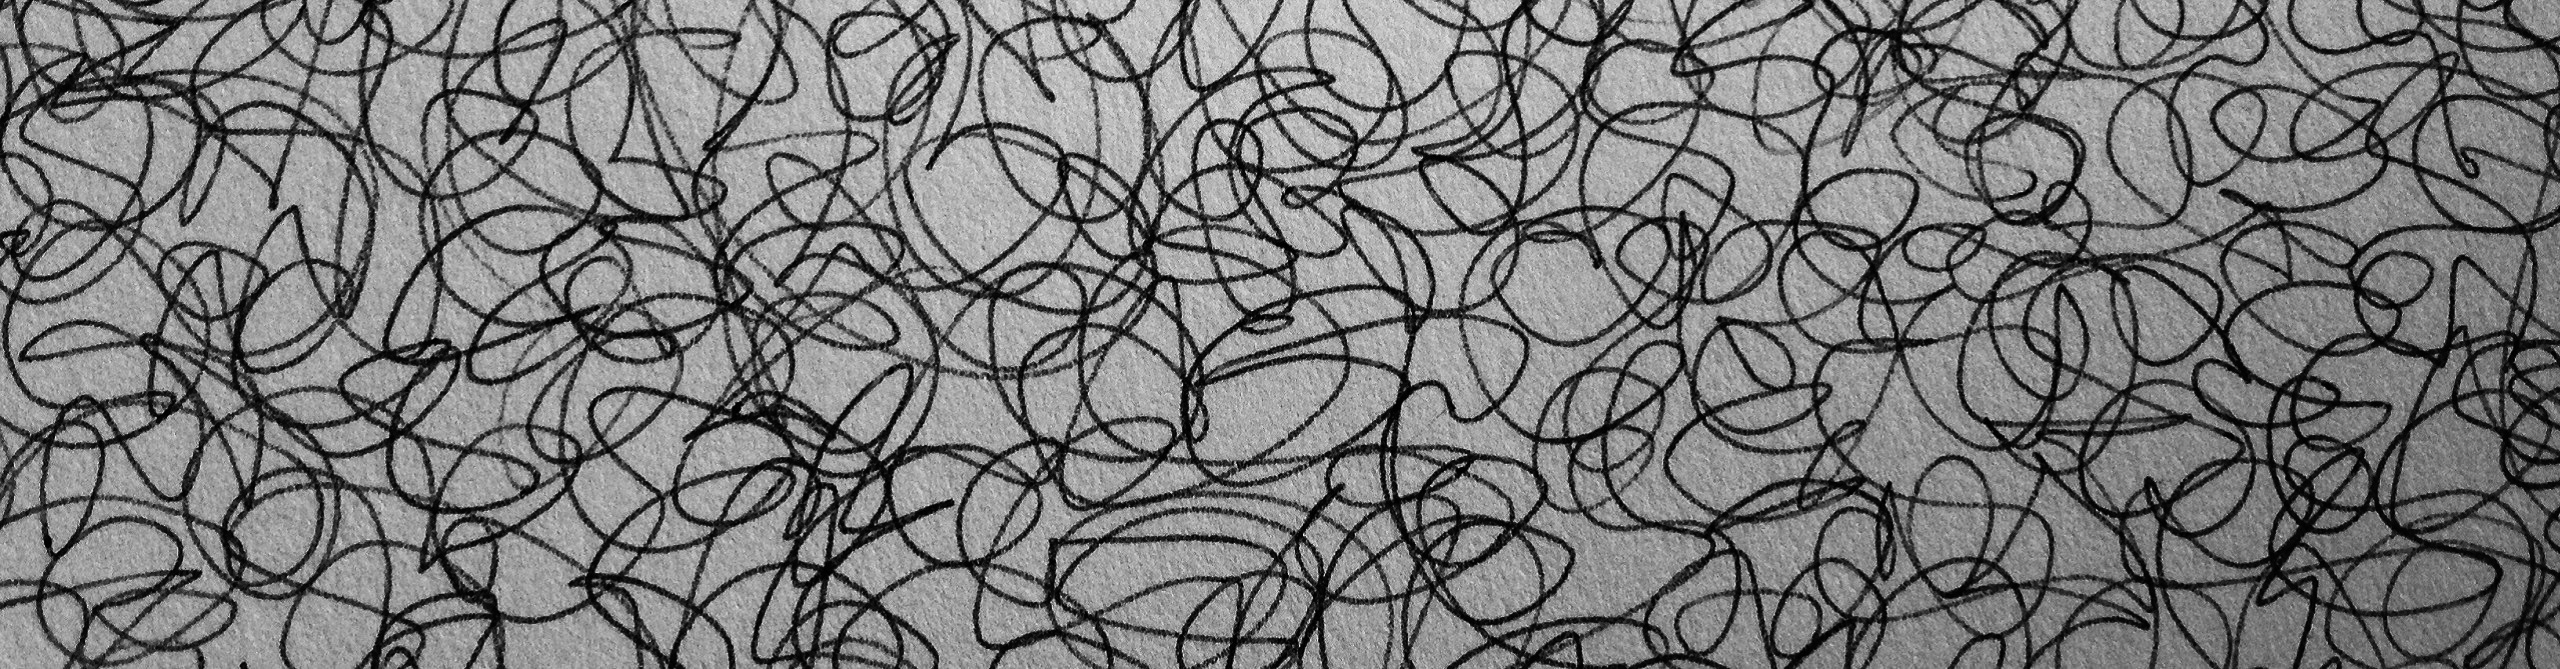 The image shows biro ink on paper in a graceful 10m long, meditative stim. It appears as one long unbroken line forming small swirls.